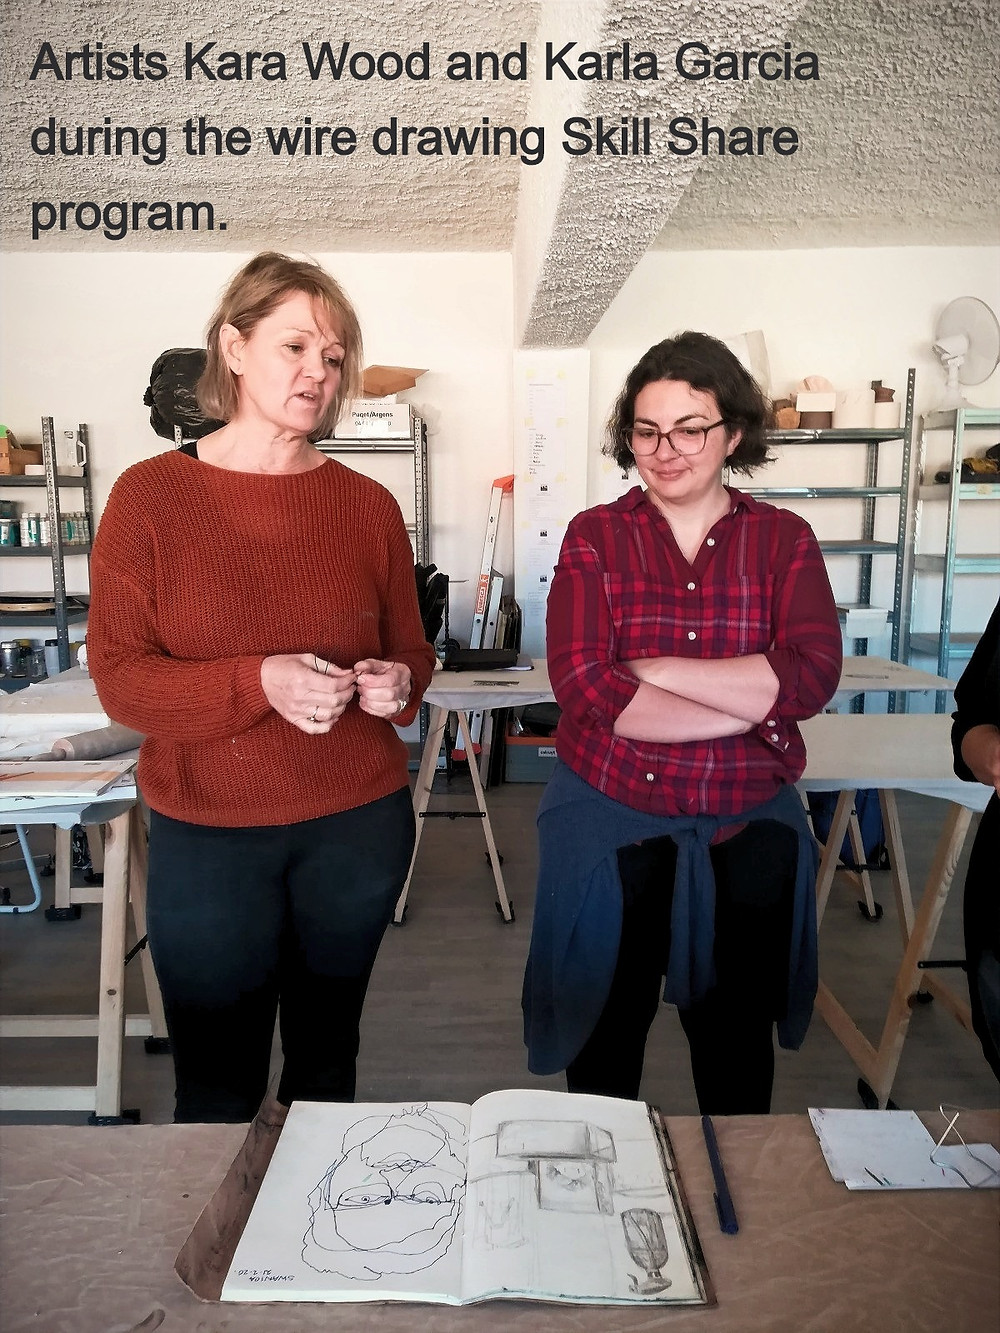 Artists Kara Wood and Karla Garcia during the wire drawing skill share workshop. Photo courtesy of Wendy Gers.